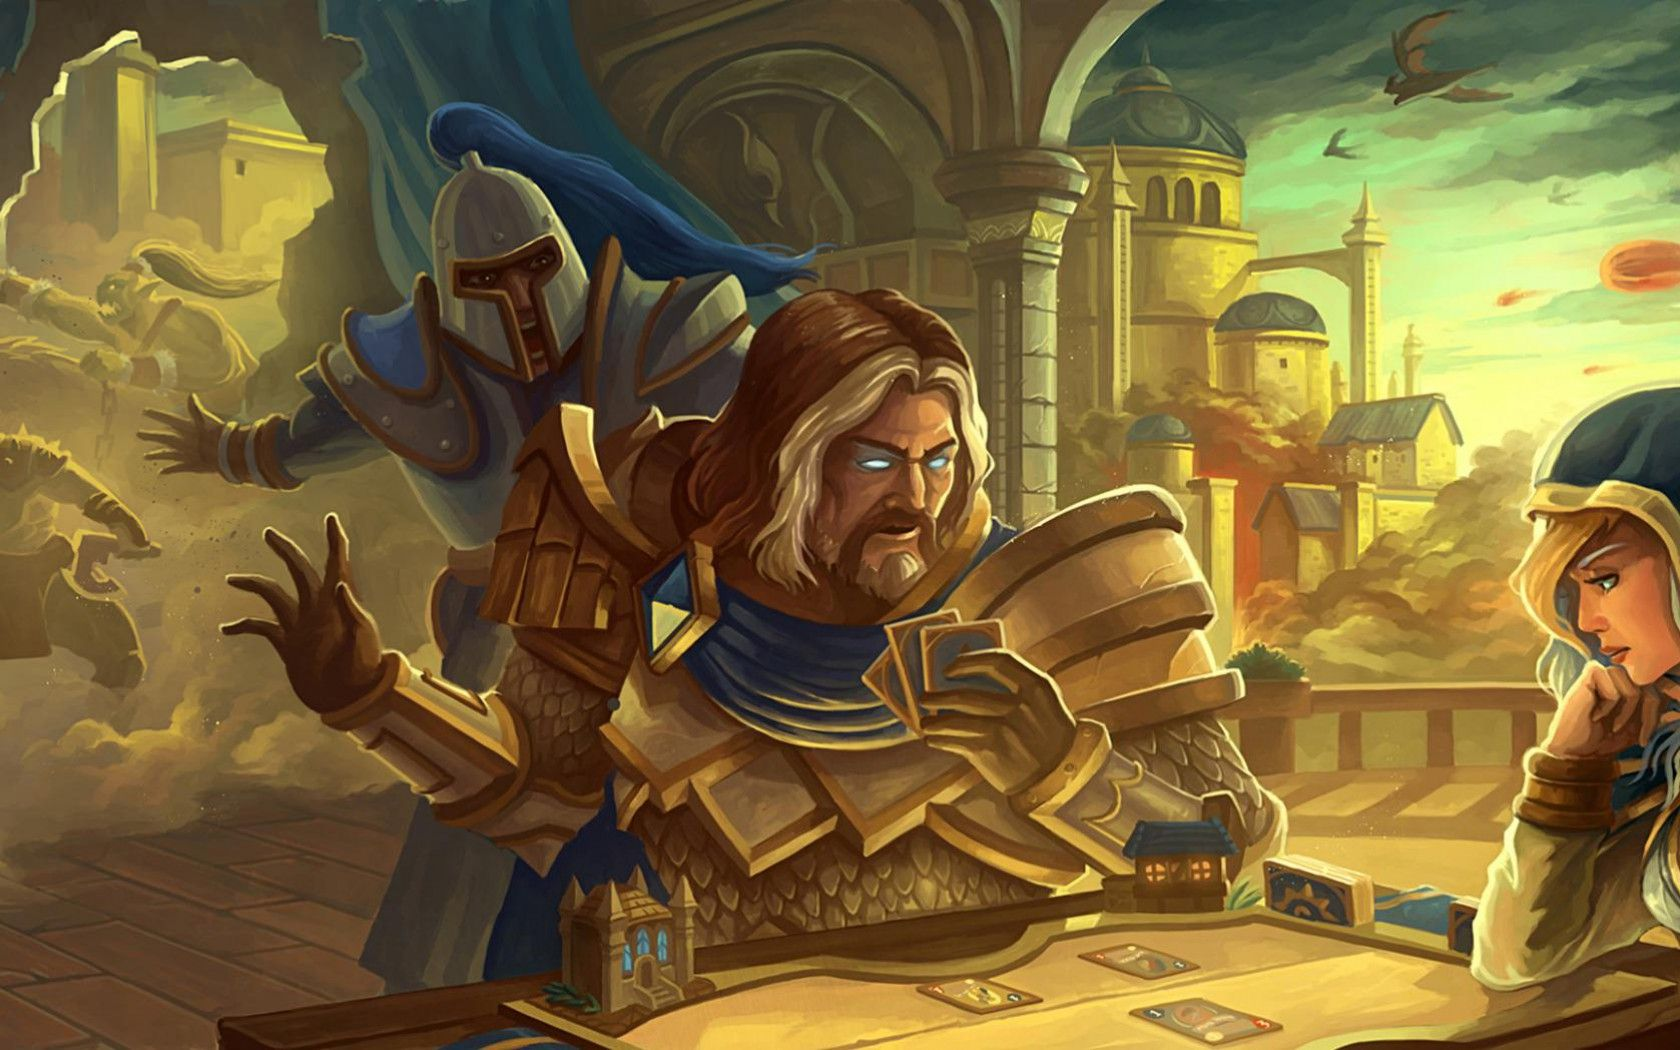 World Of Warcraft Paladin Wallpaper Wallpapers Kid 1280 1024 Wow